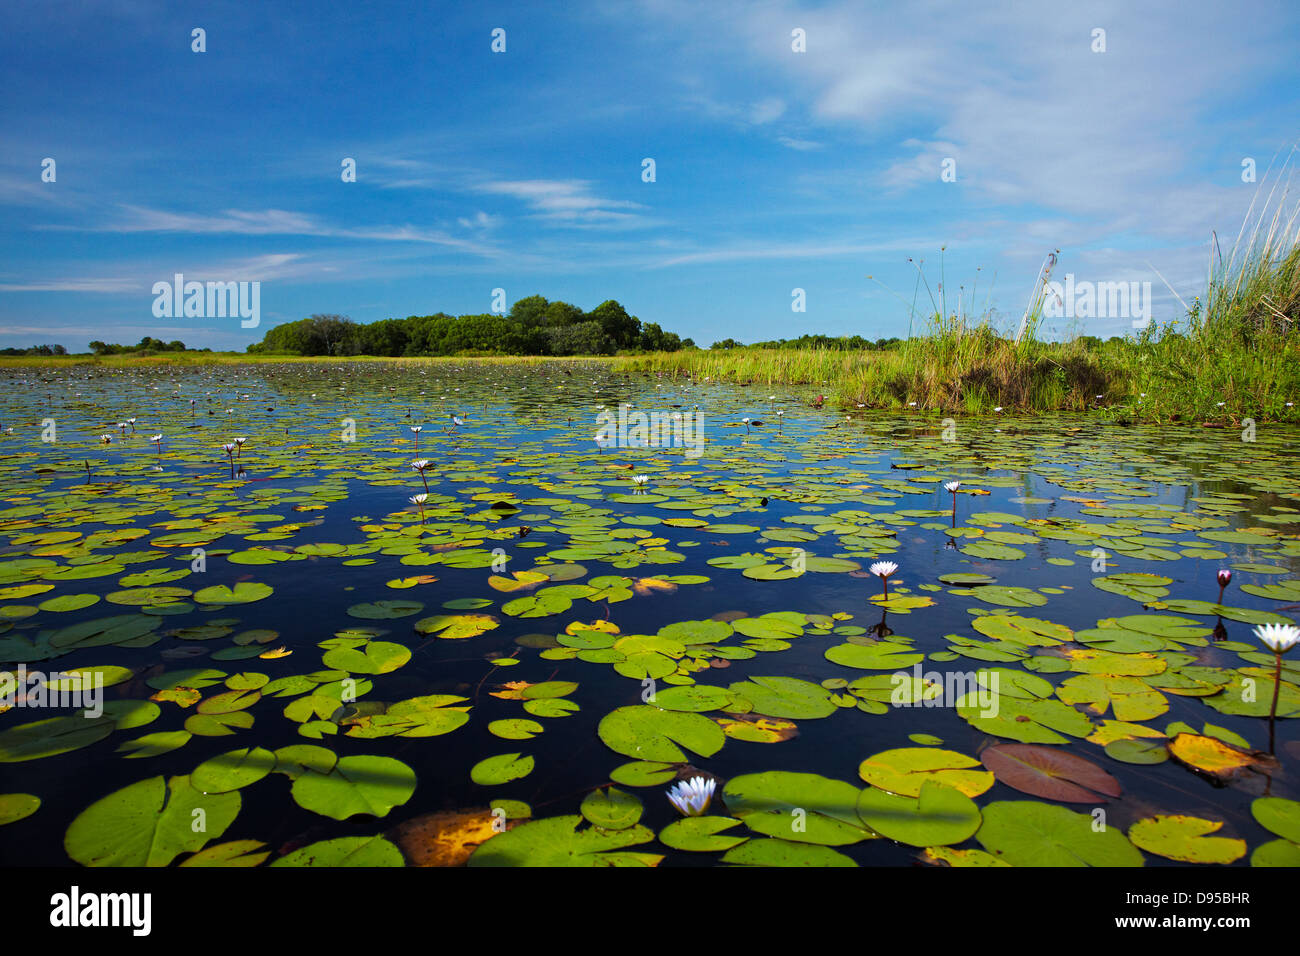 Water lilies, Okavango Delta, Botswana, Africa Stock Photo